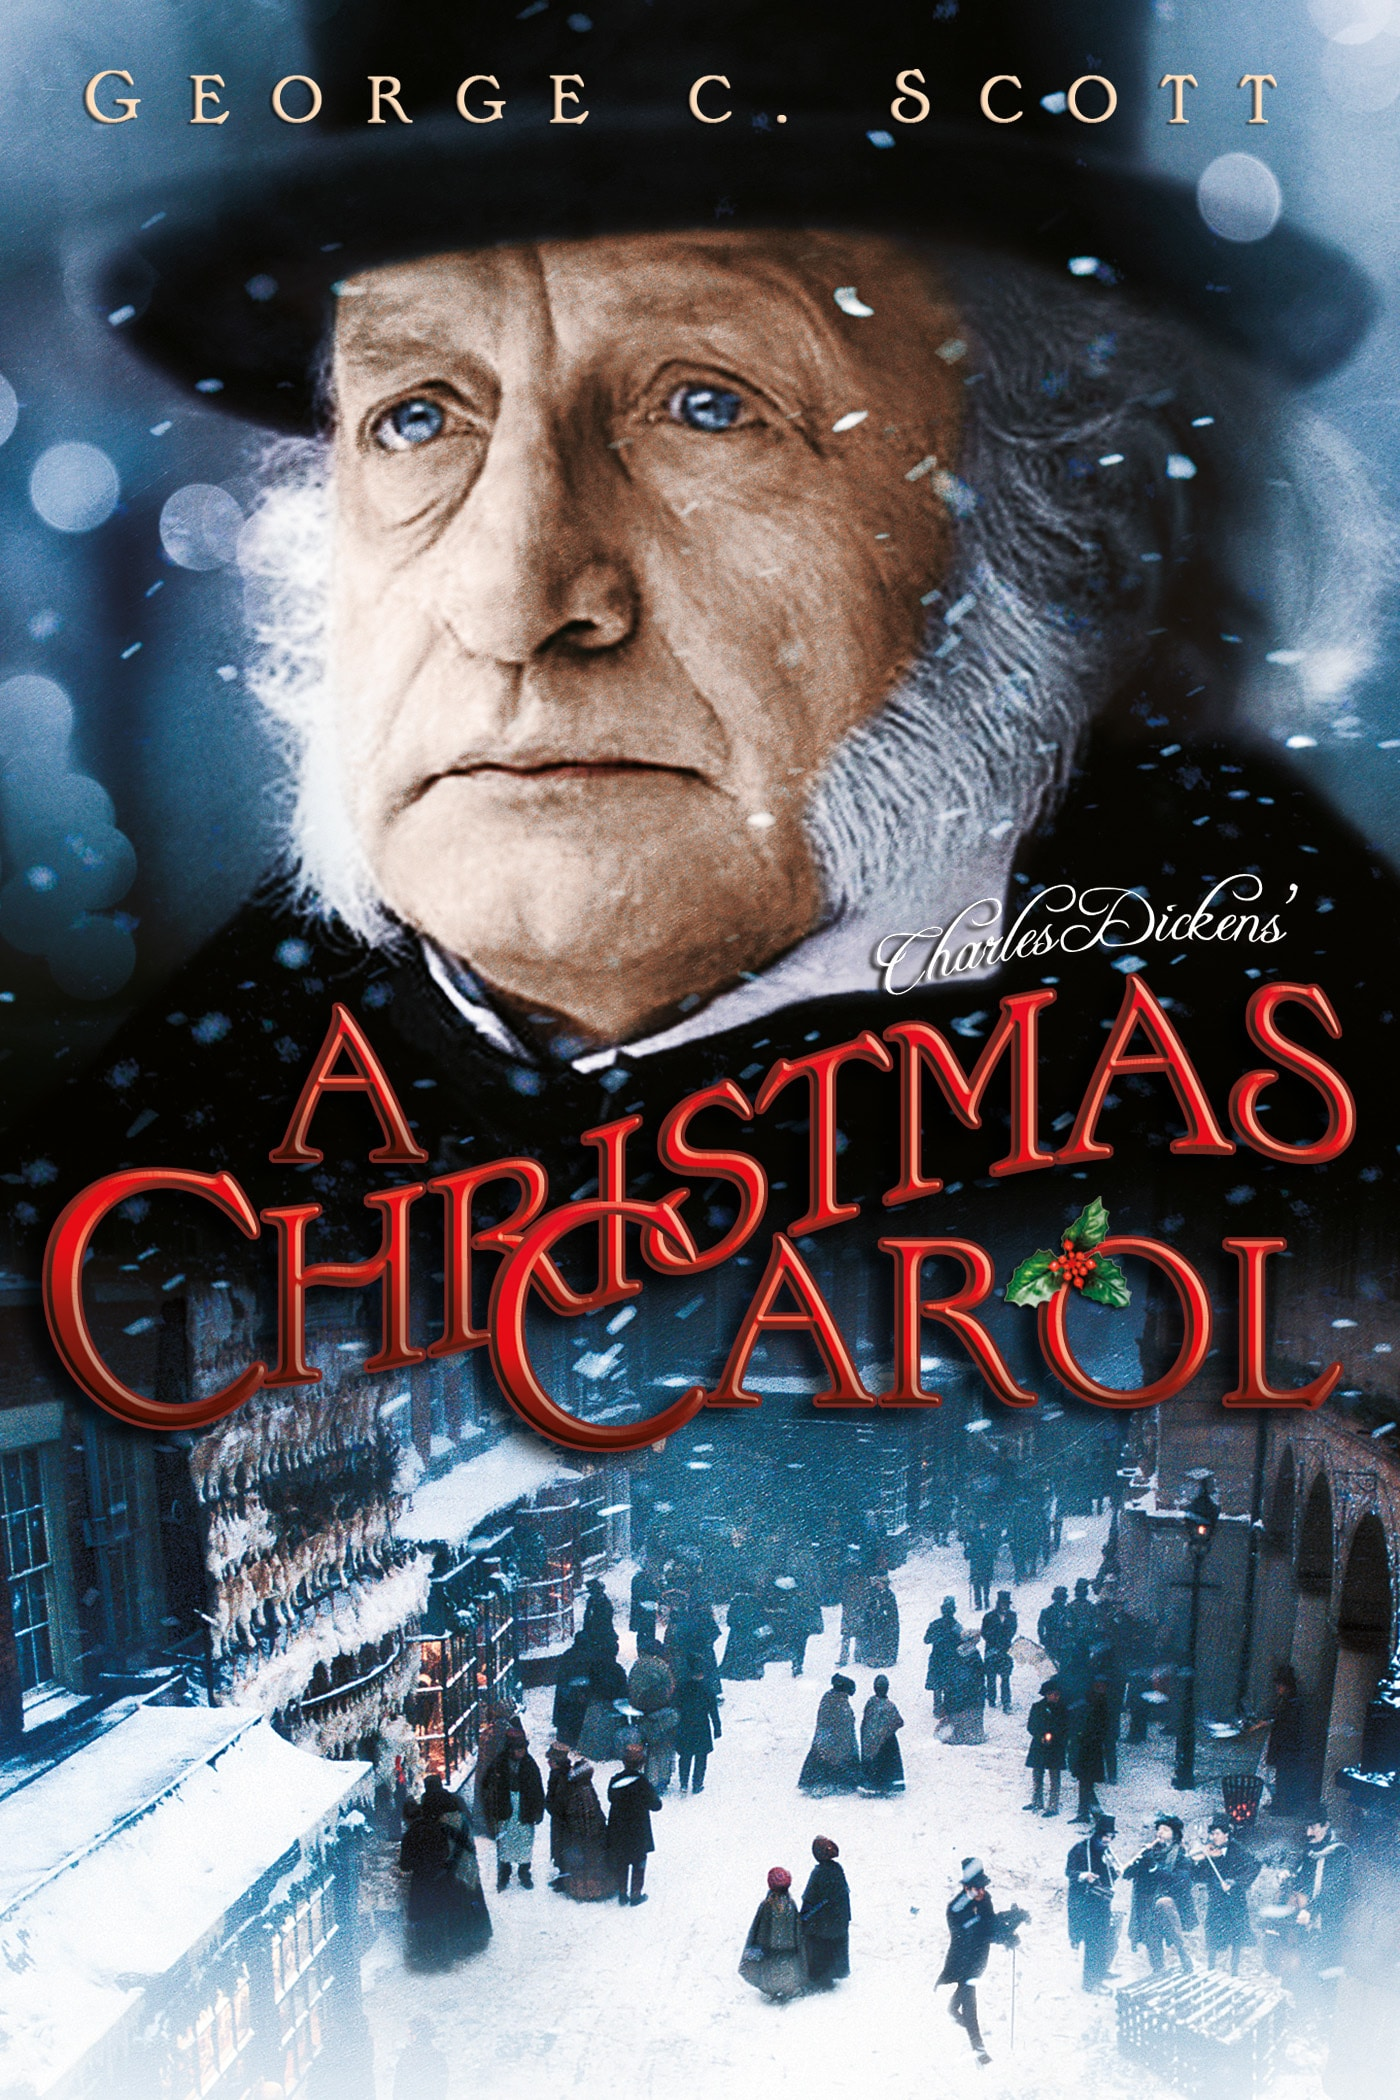 A Christmas Carol movie poster